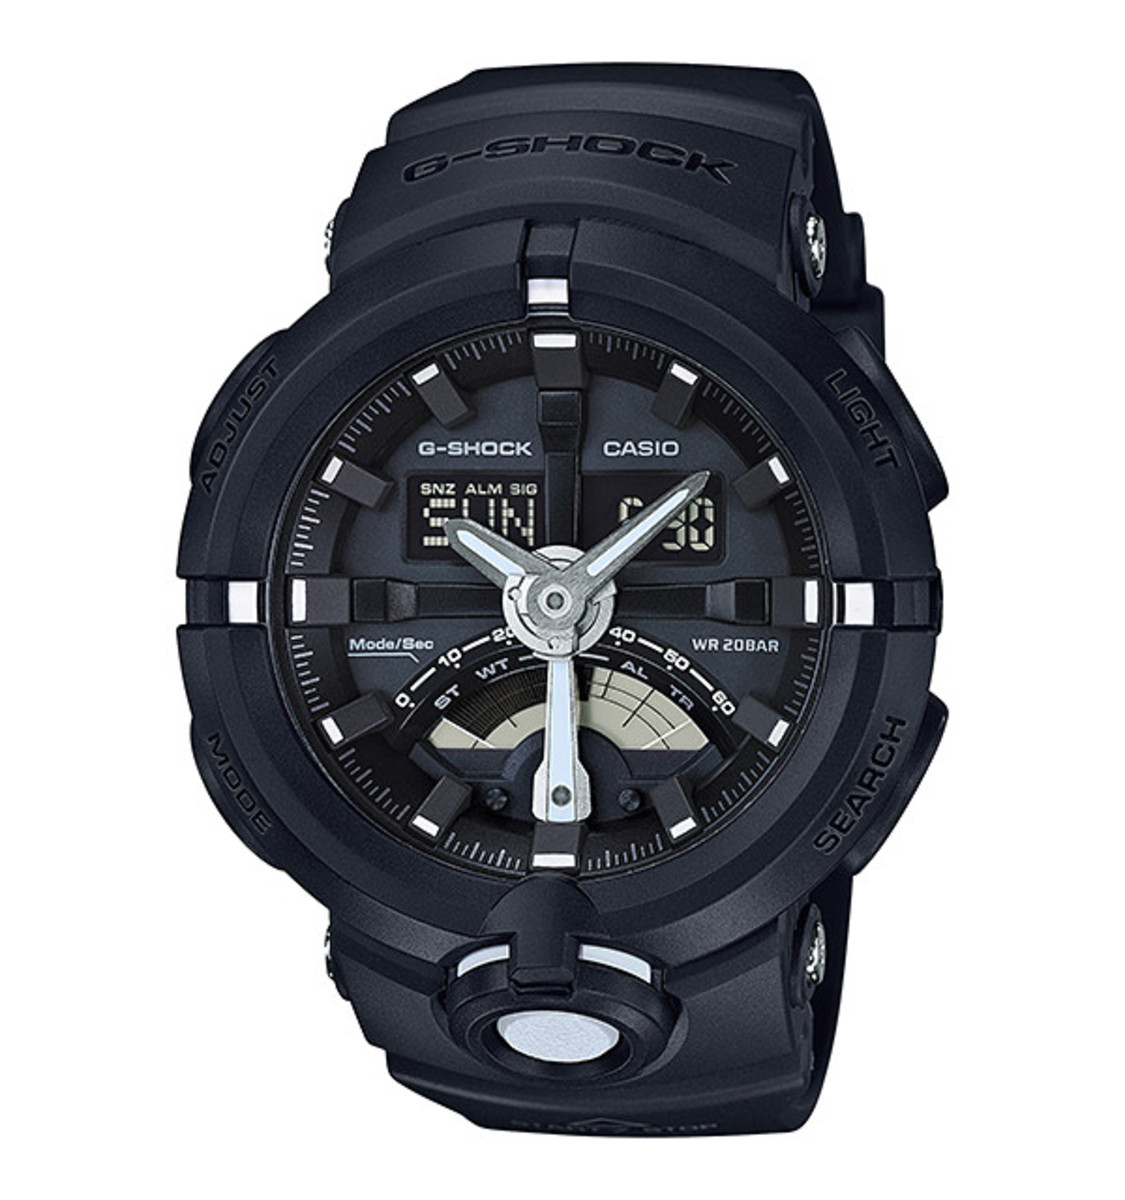 casio-g-shock-ga-500-series-urban-sports-01.jpg